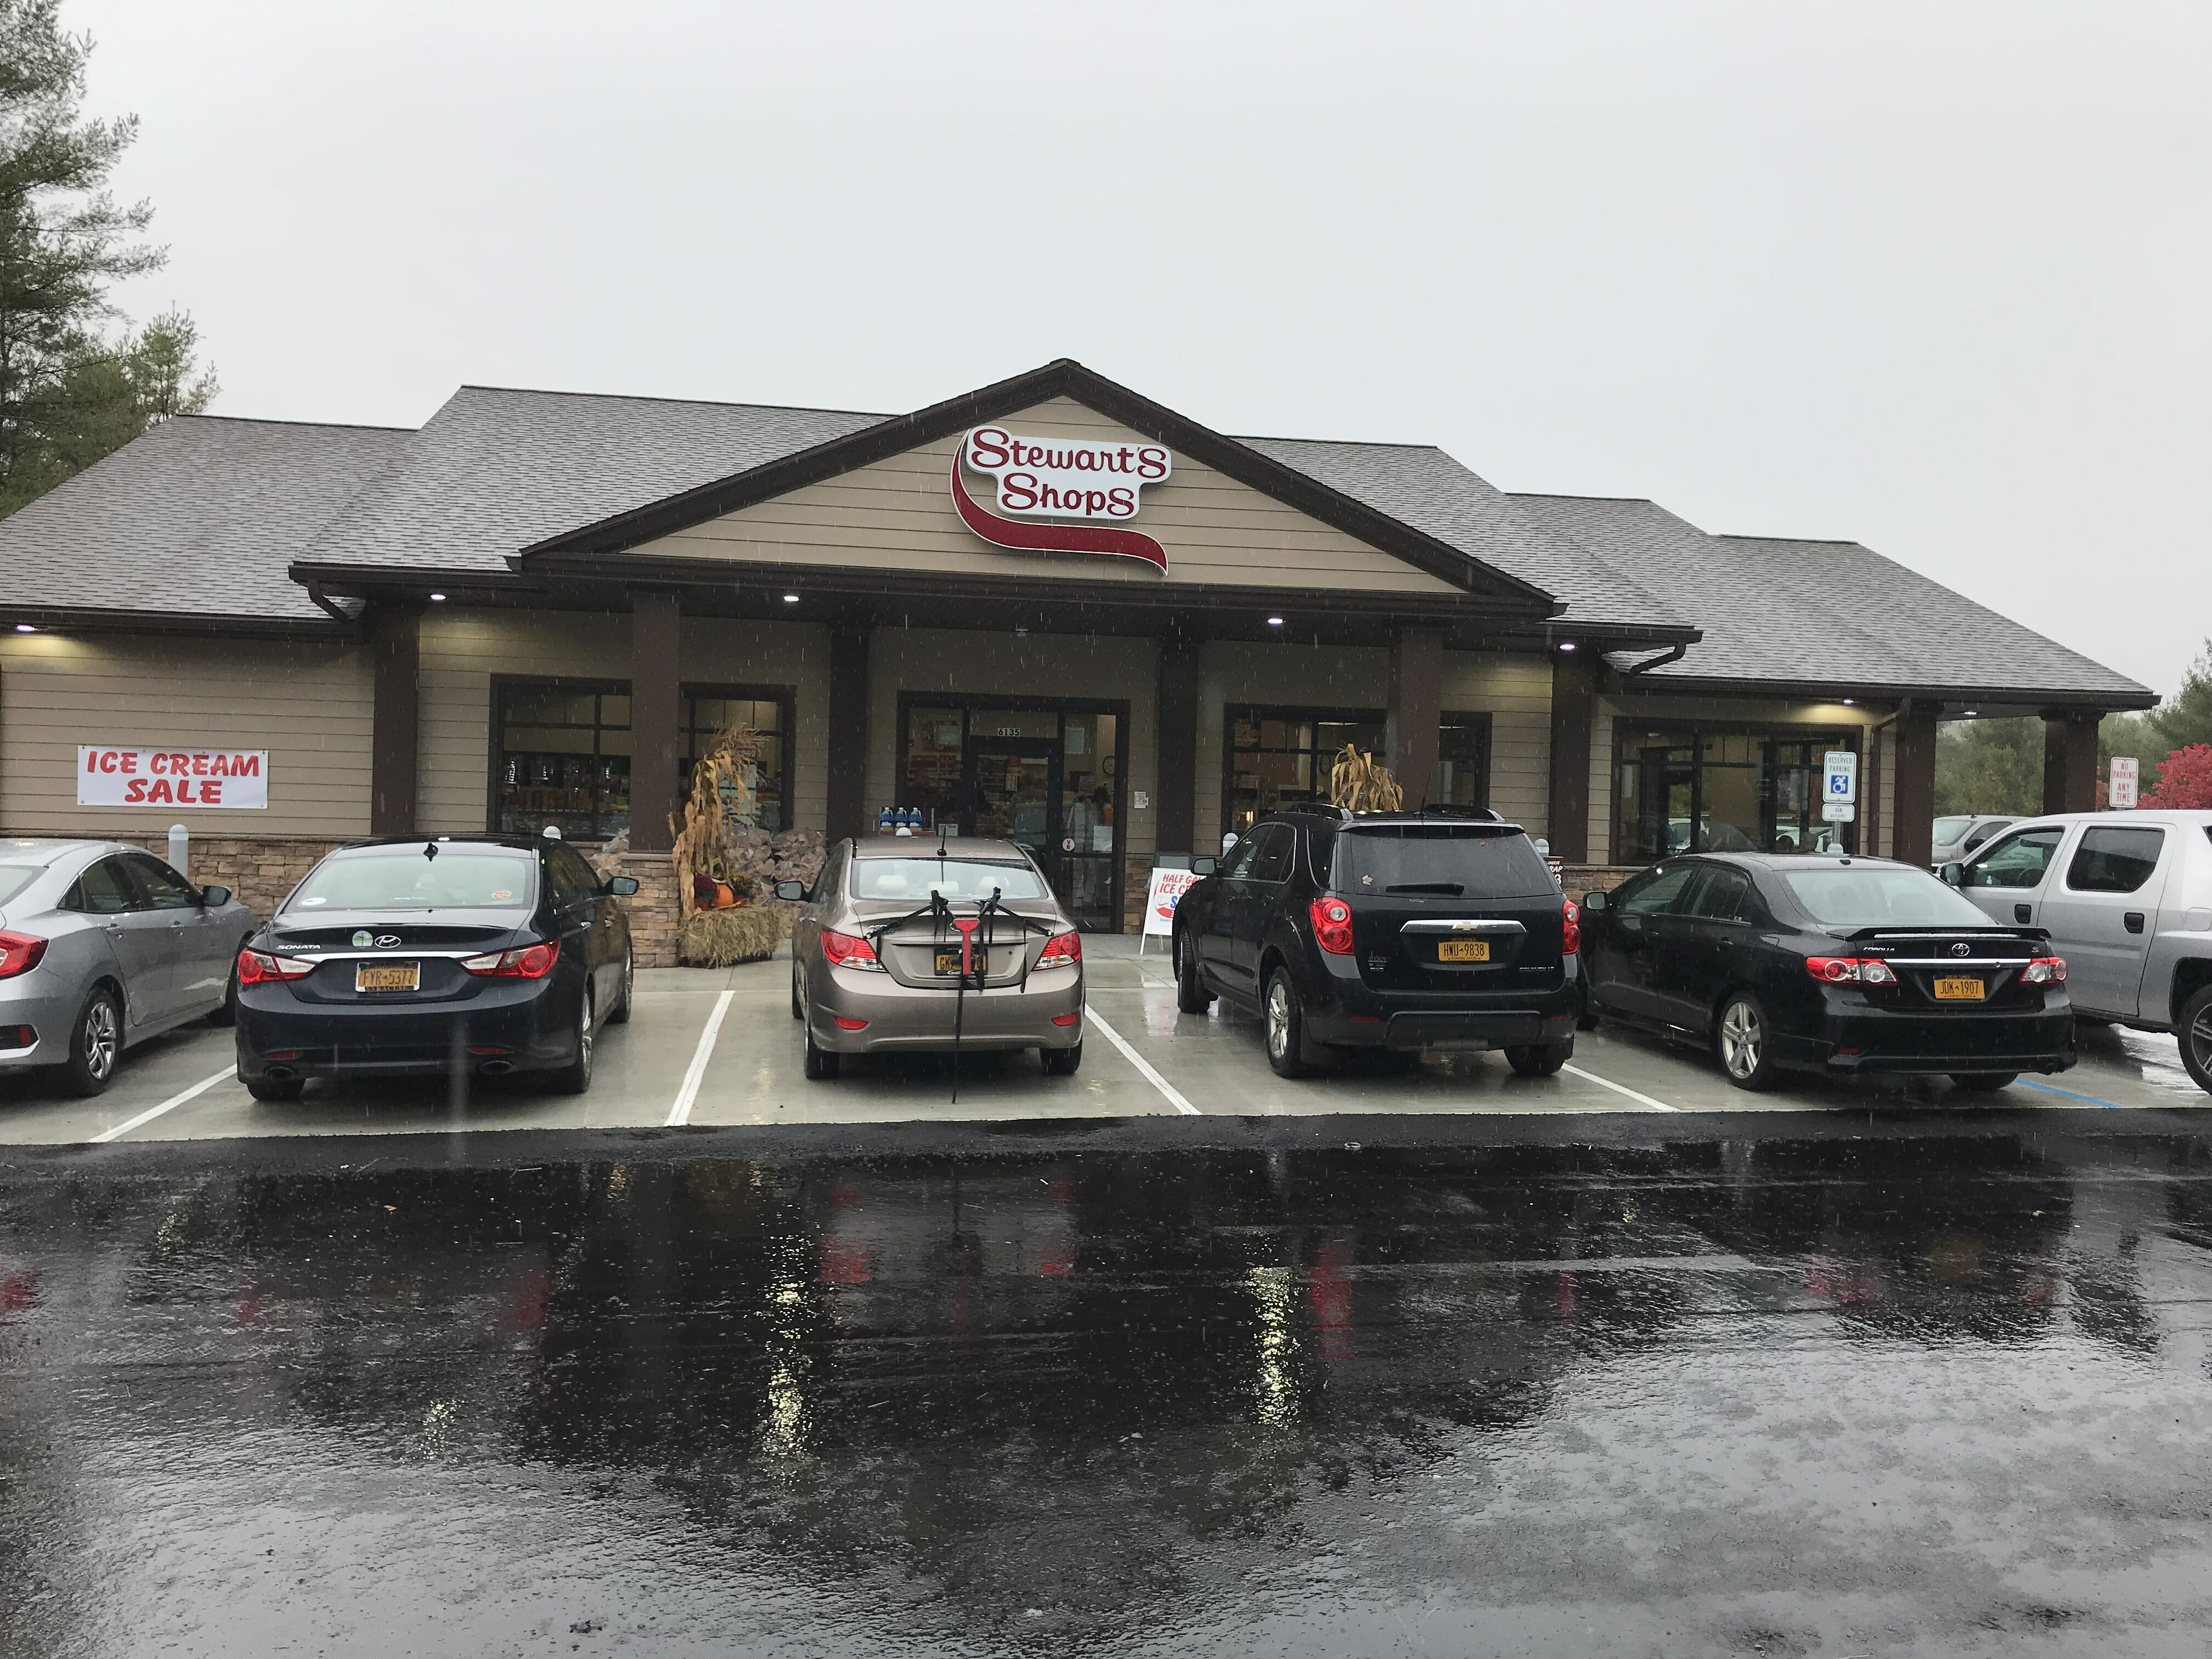 New Chestertown shop opened on 10/2